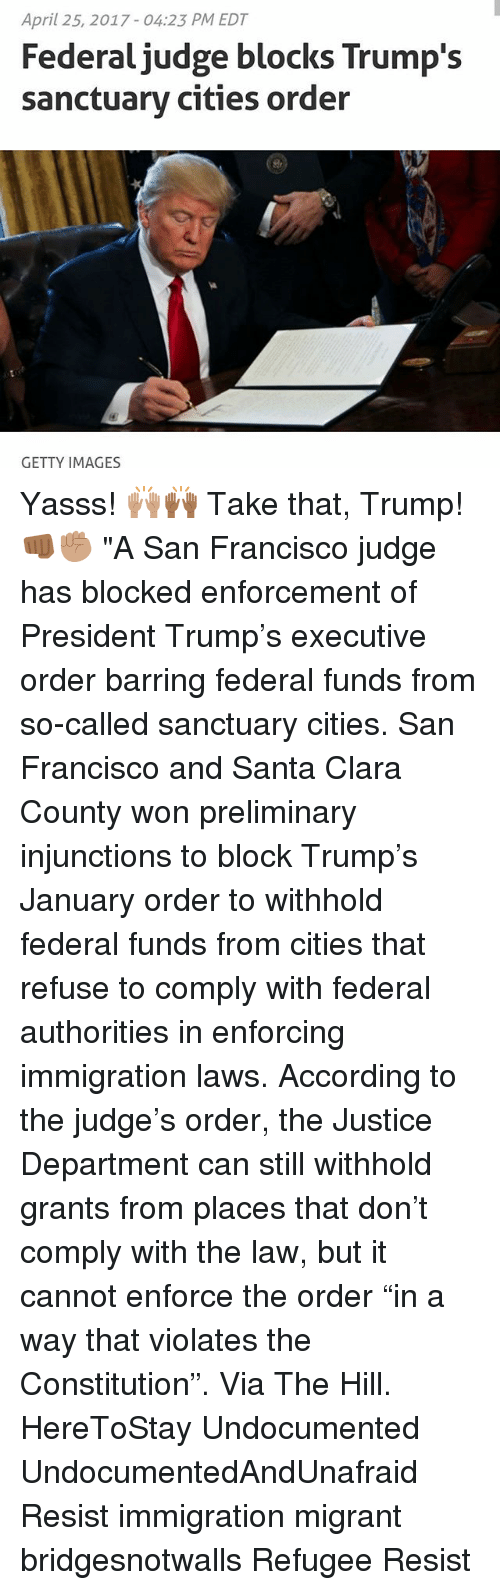 """Memes, Constitution, and Getty Images: April 25, 2017 04:23 PM EDT  Federal judge blocks Trump's  sanctuary cities order  GETTY IMAGES Yasss! 🙌🏽🙌🏾 Take that, Trump! 👊🏾✊🏽 """"A San Francisco judge has blocked enforcement of President Trump's executive order barring federal funds from so-called sanctuary cities. San Francisco and Santa Clara County won preliminary injunctions to block Trump's January order to withhold federal funds from cities that refuse to comply with federal authorities in enforcing immigration laws. According to the judge's order, the Justice Department can still withhold grants from places that don't comply with the law, but it cannot enforce the order """"in a way that violates the Constitution"""". Via The Hill. HereToStay Undocumented UndocumentedAndUnafraid Resist immigration migrant bridgesnotwalls Refugee Resist"""